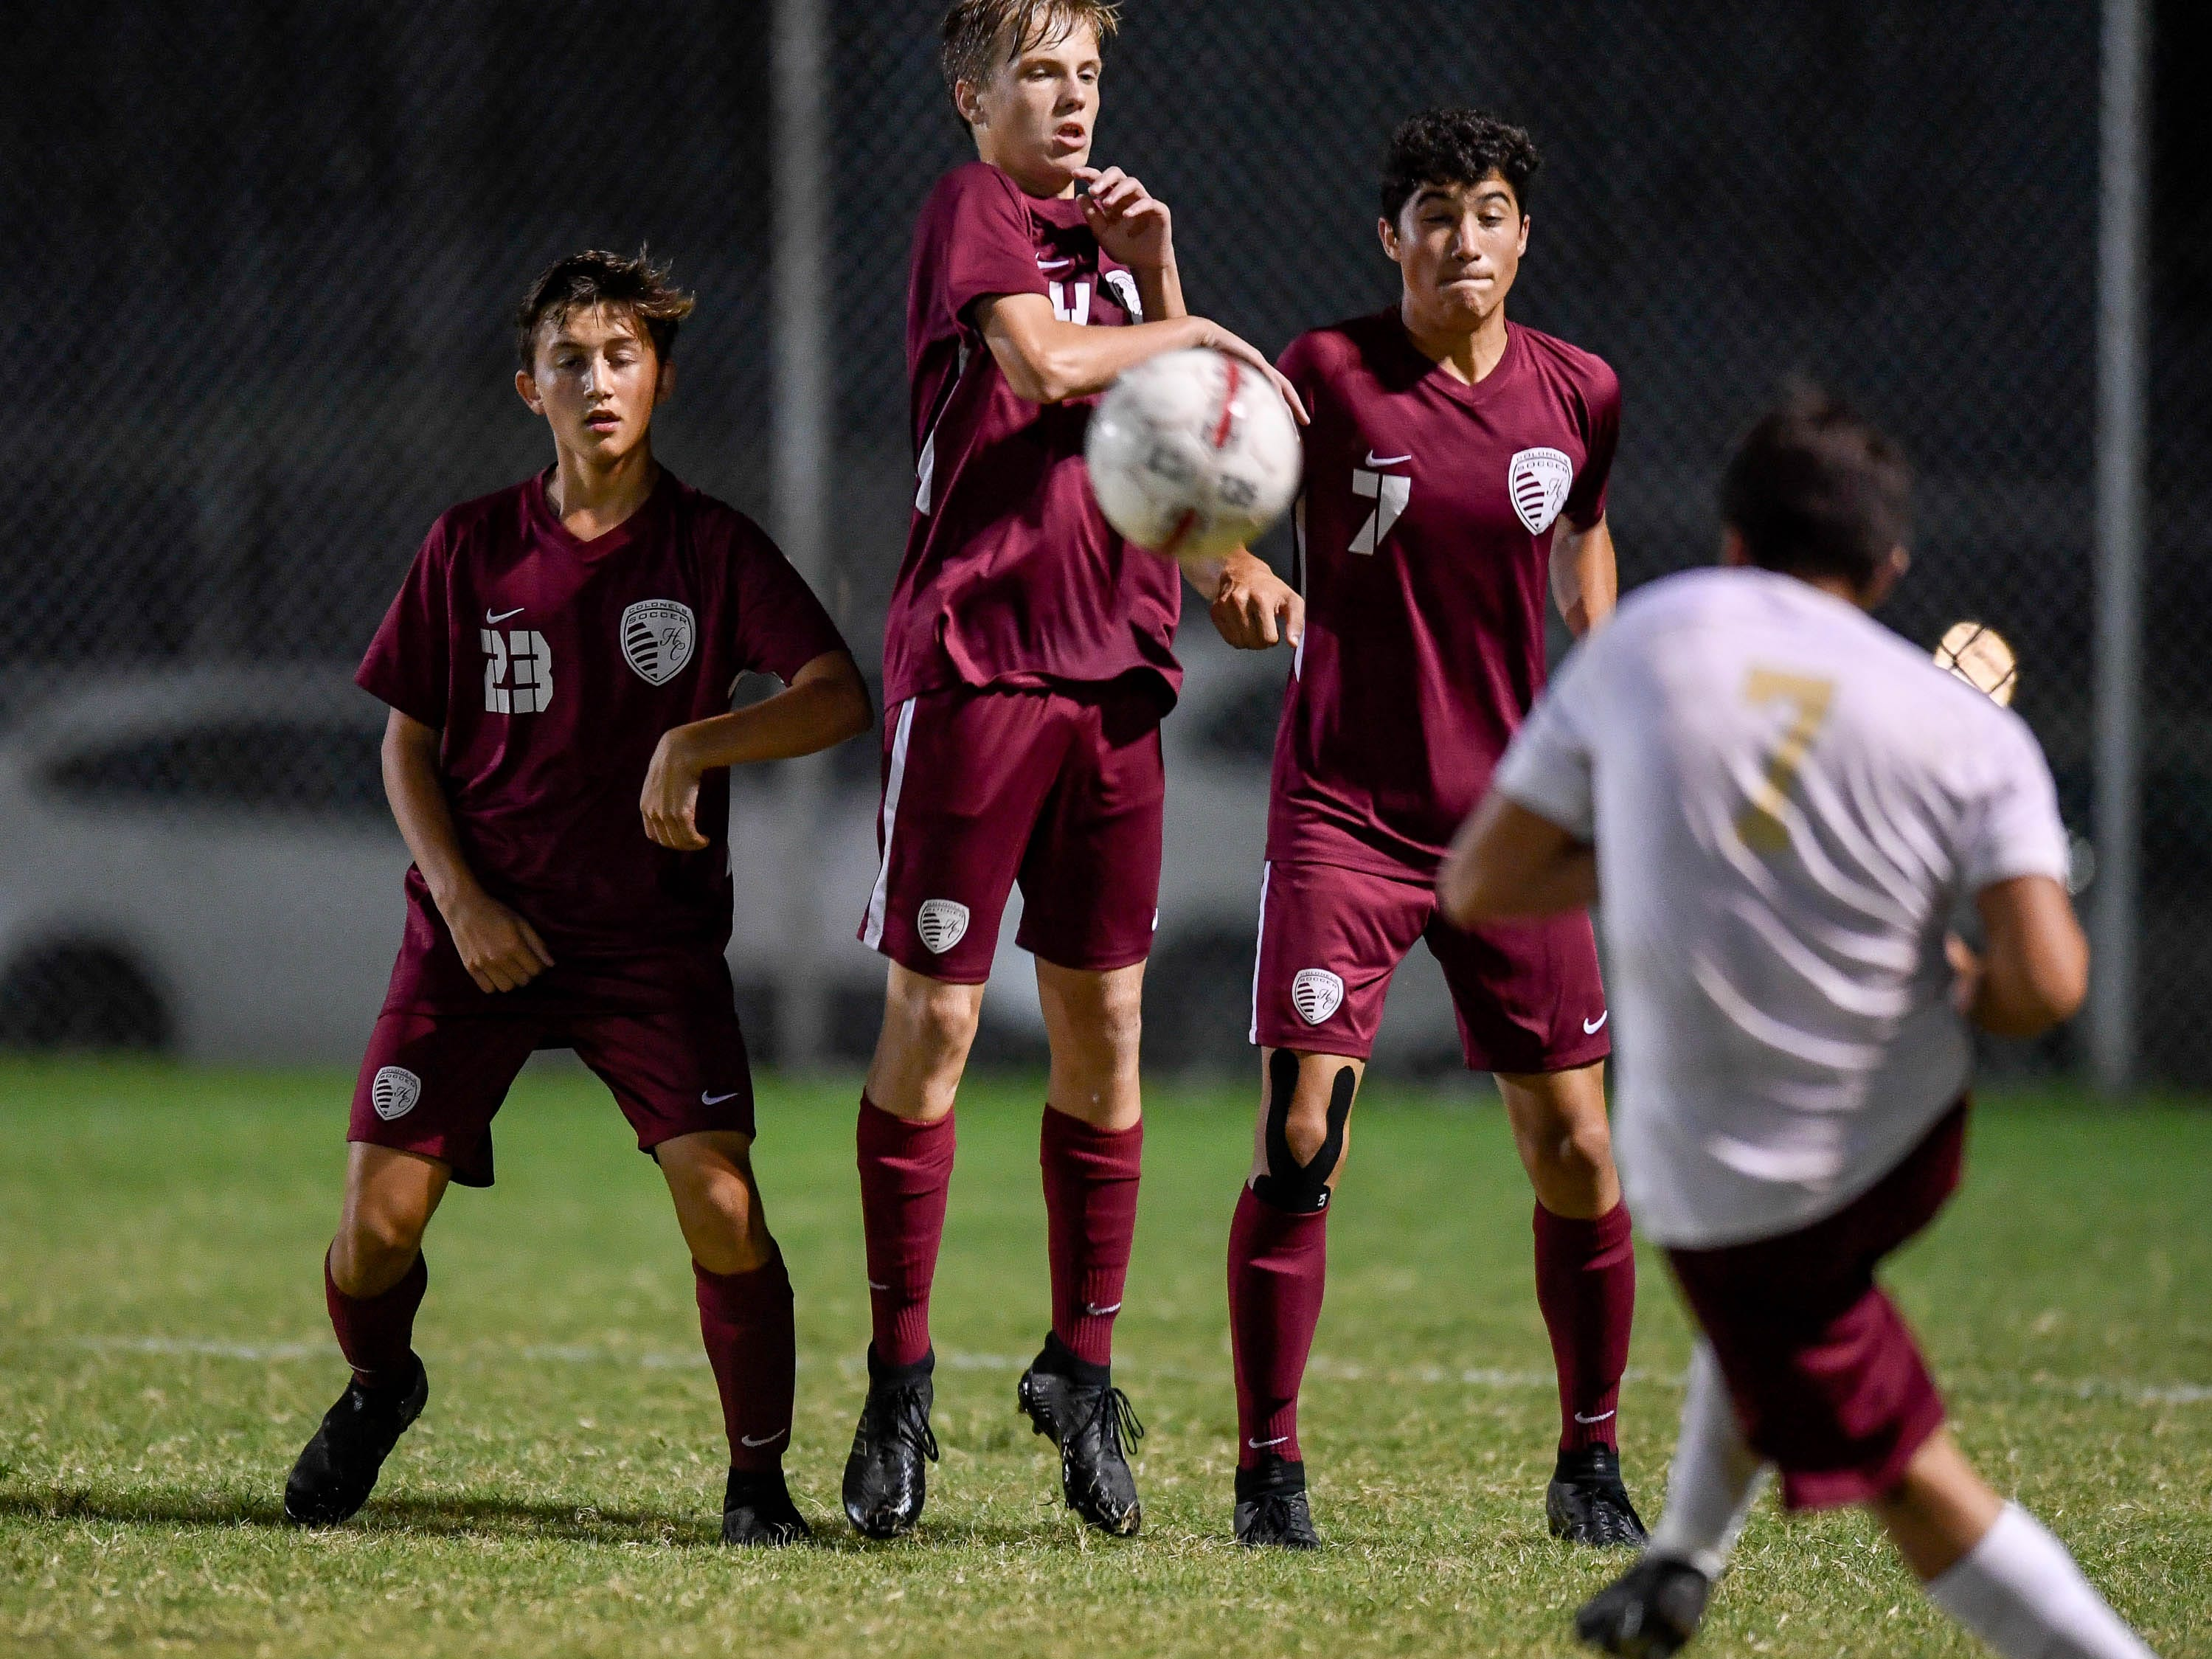 Henderson County's Wes Tompkins (23), Trevor Book (24) and  Adam Gillham (7) block a goal kick from as the Henderson County Colonels play the Webster County Trojans in the Sixth District Soccer Tournament at Colonel Field Wednesday, October 10, 2018.